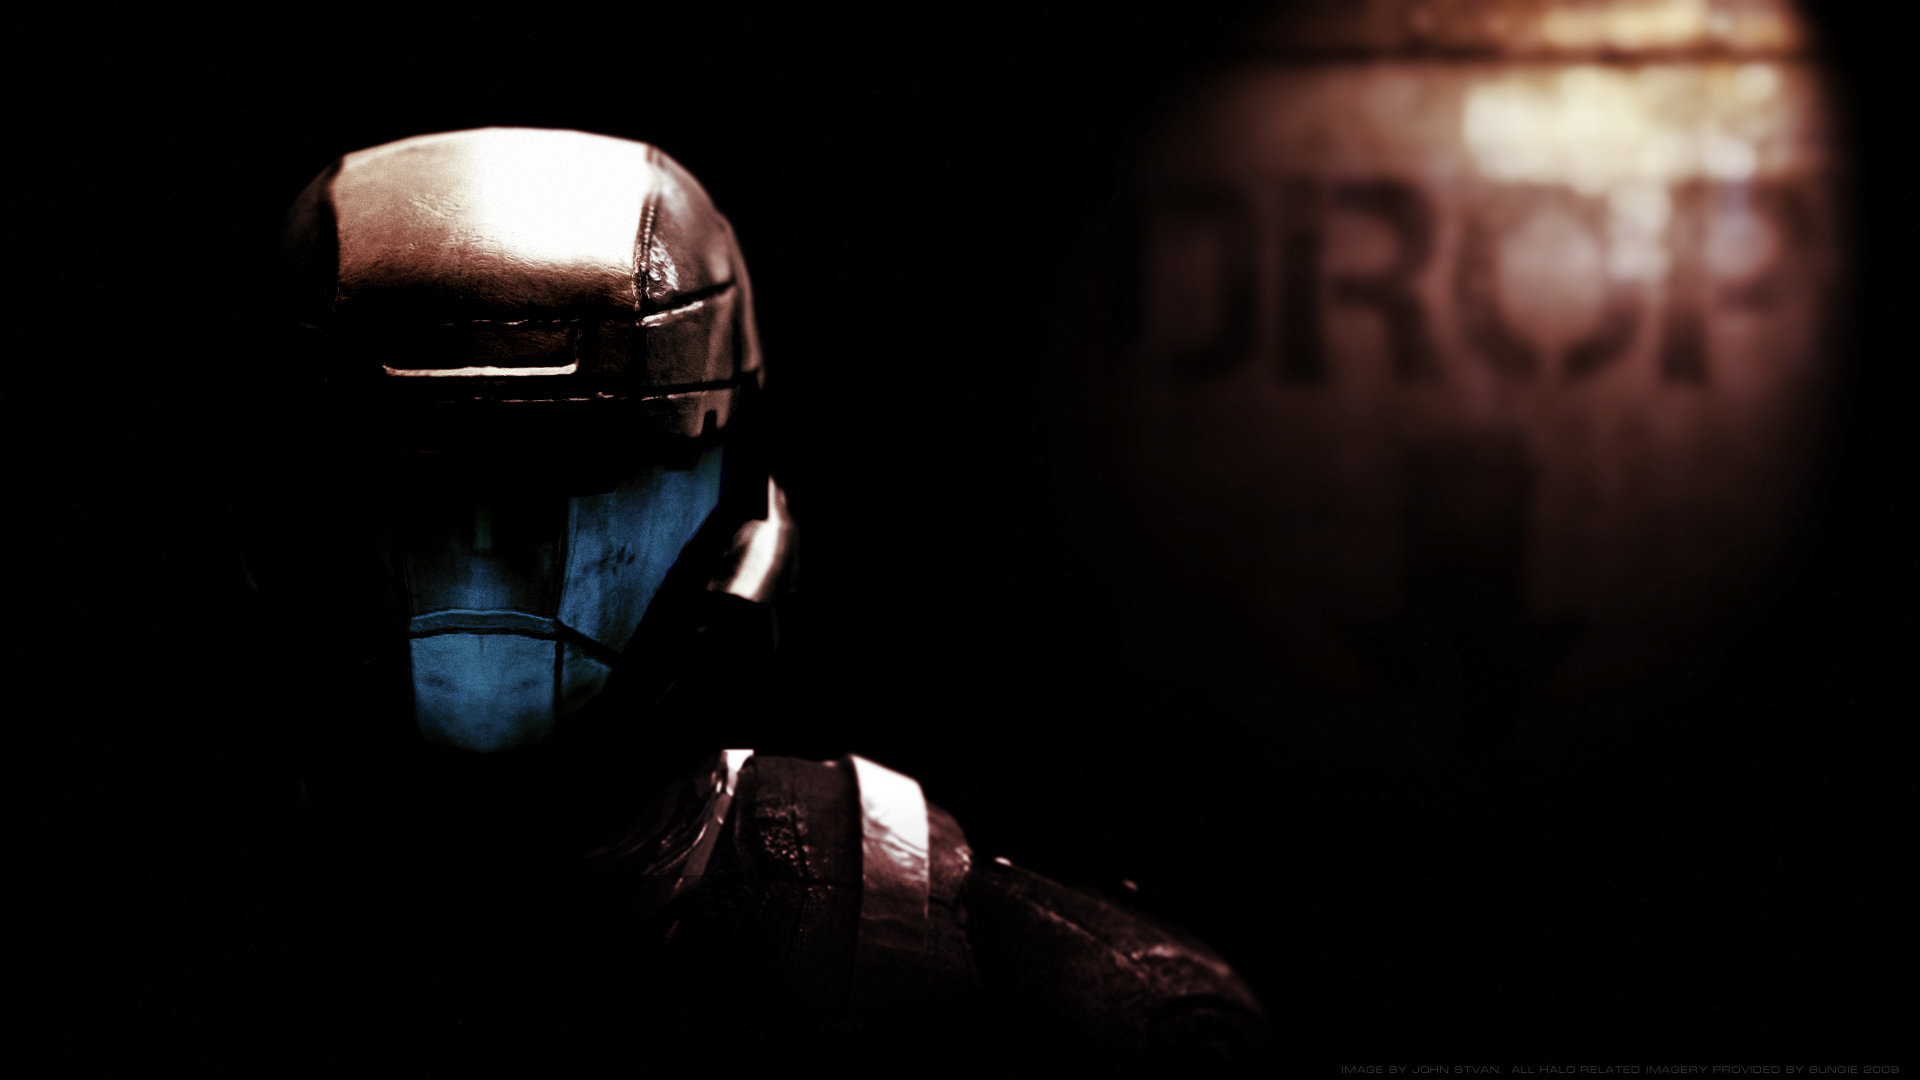 halo 3: odst wallpapers 1920x1080 full hd (1080p) desktop backgrounds